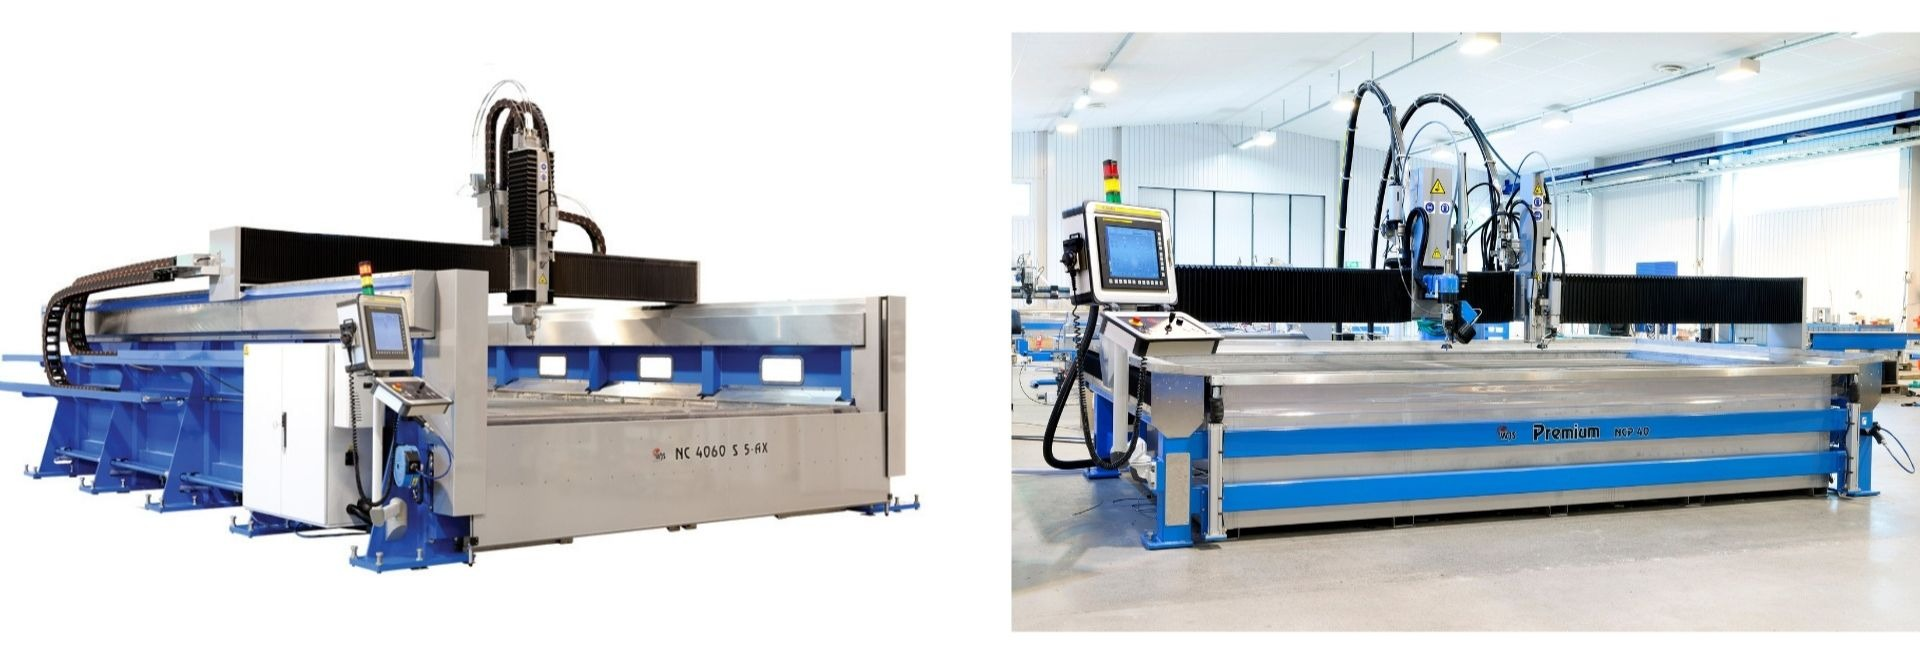 Fast ROI from waterjet machine investment and its unexpected